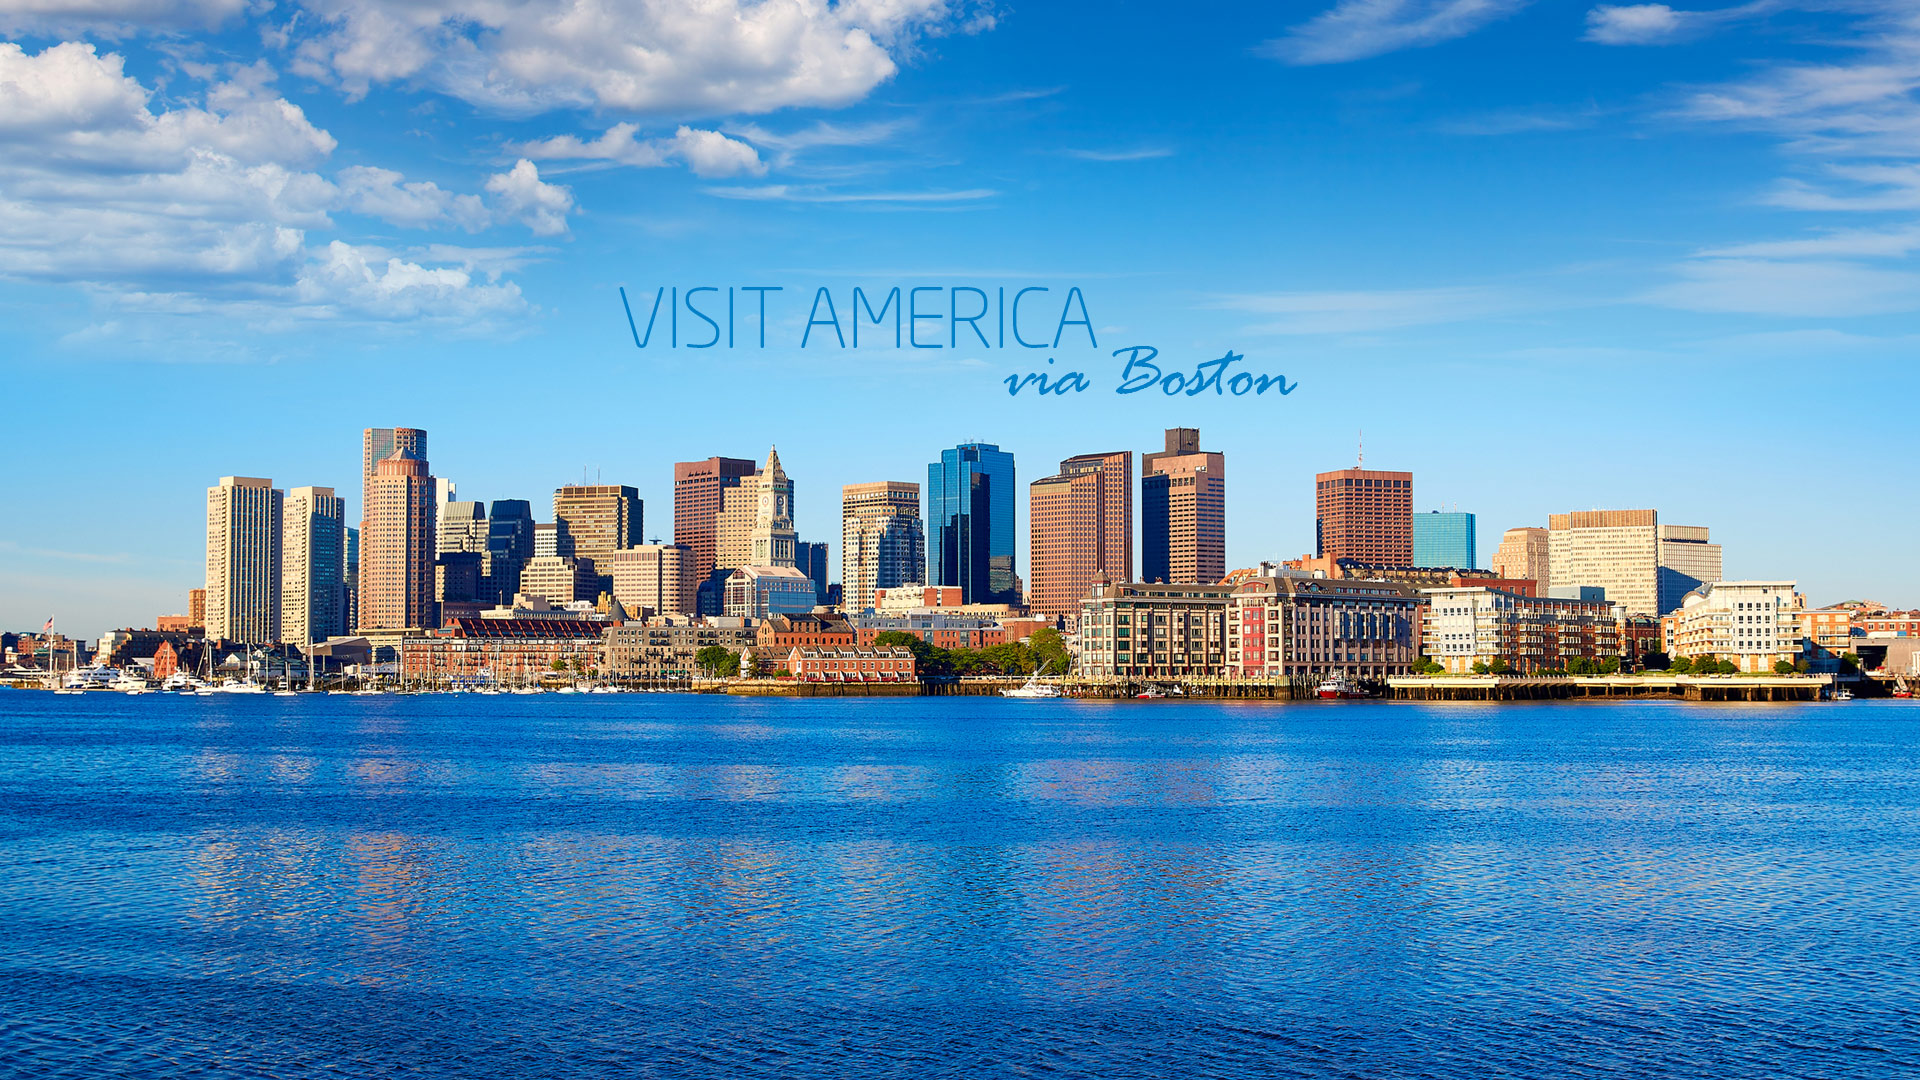 Visit America. Via Boston